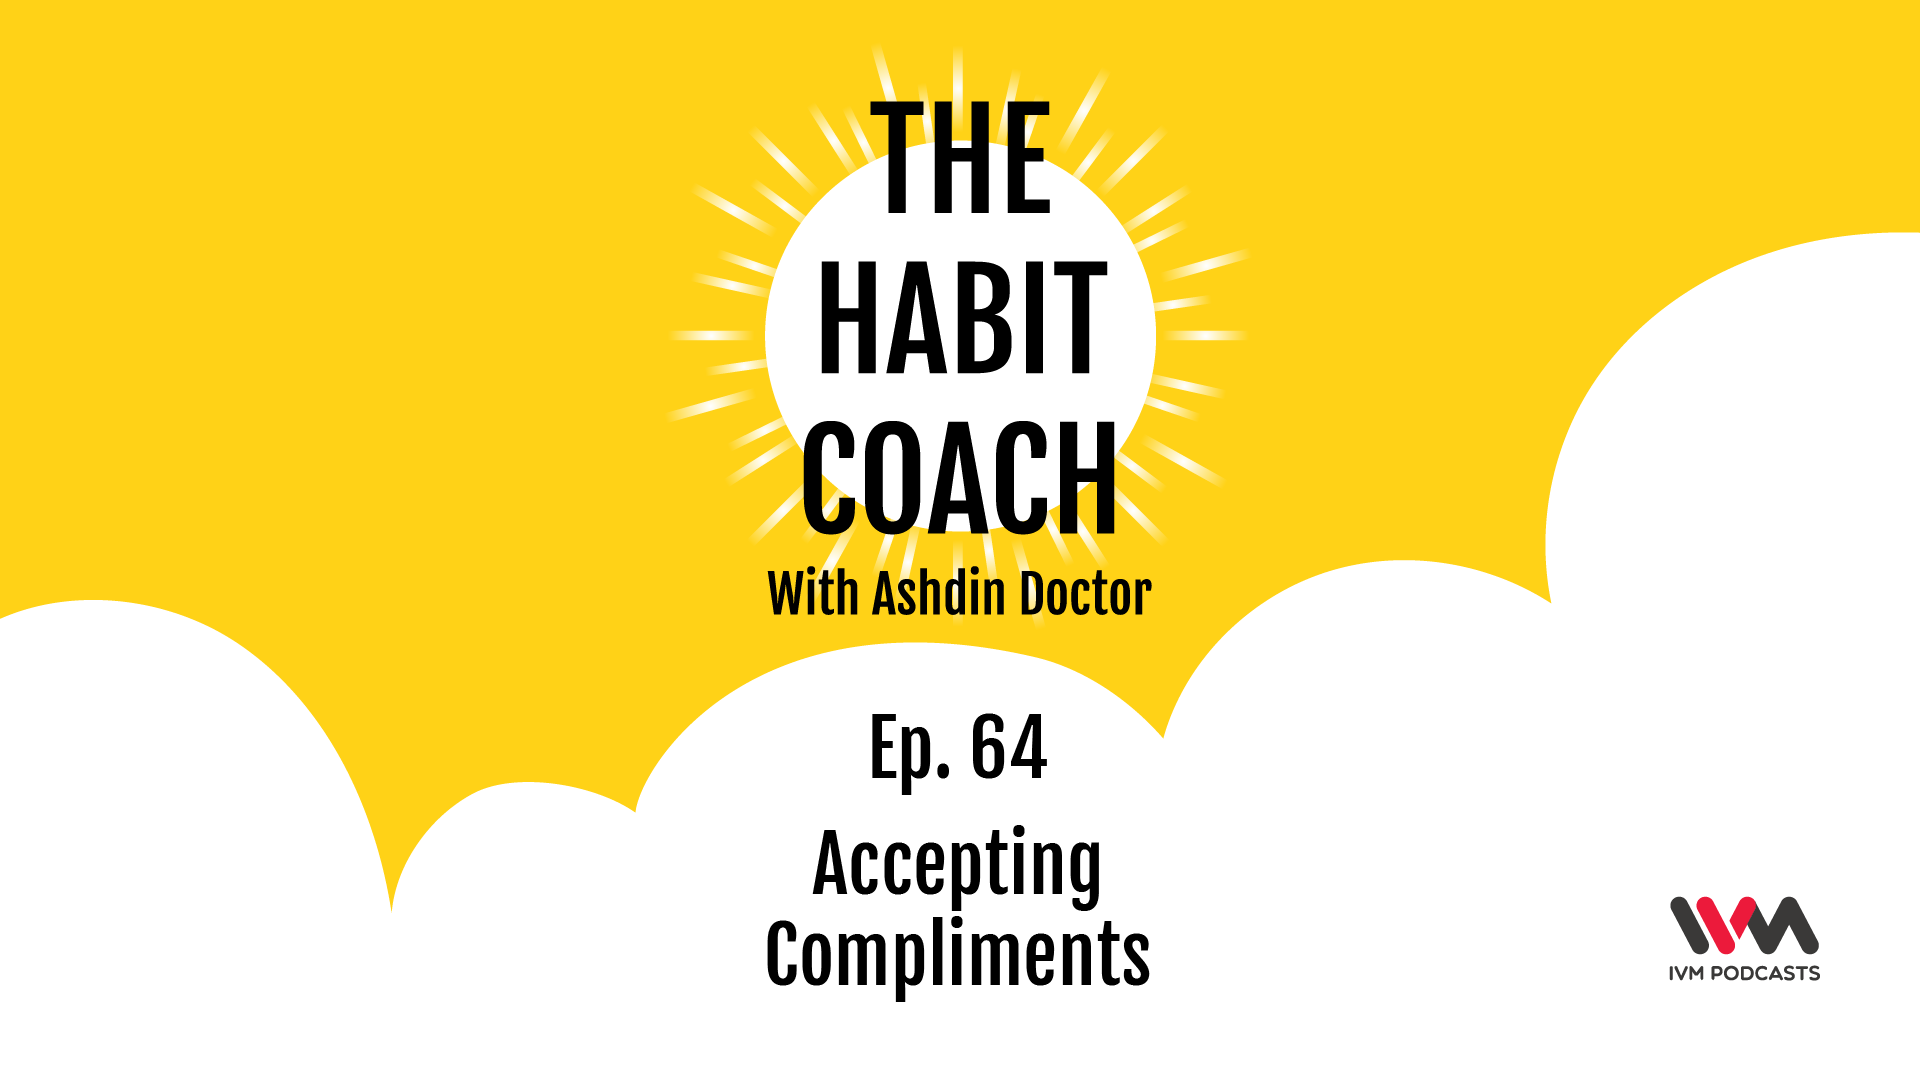 TheHabitCoachEpisode64.png